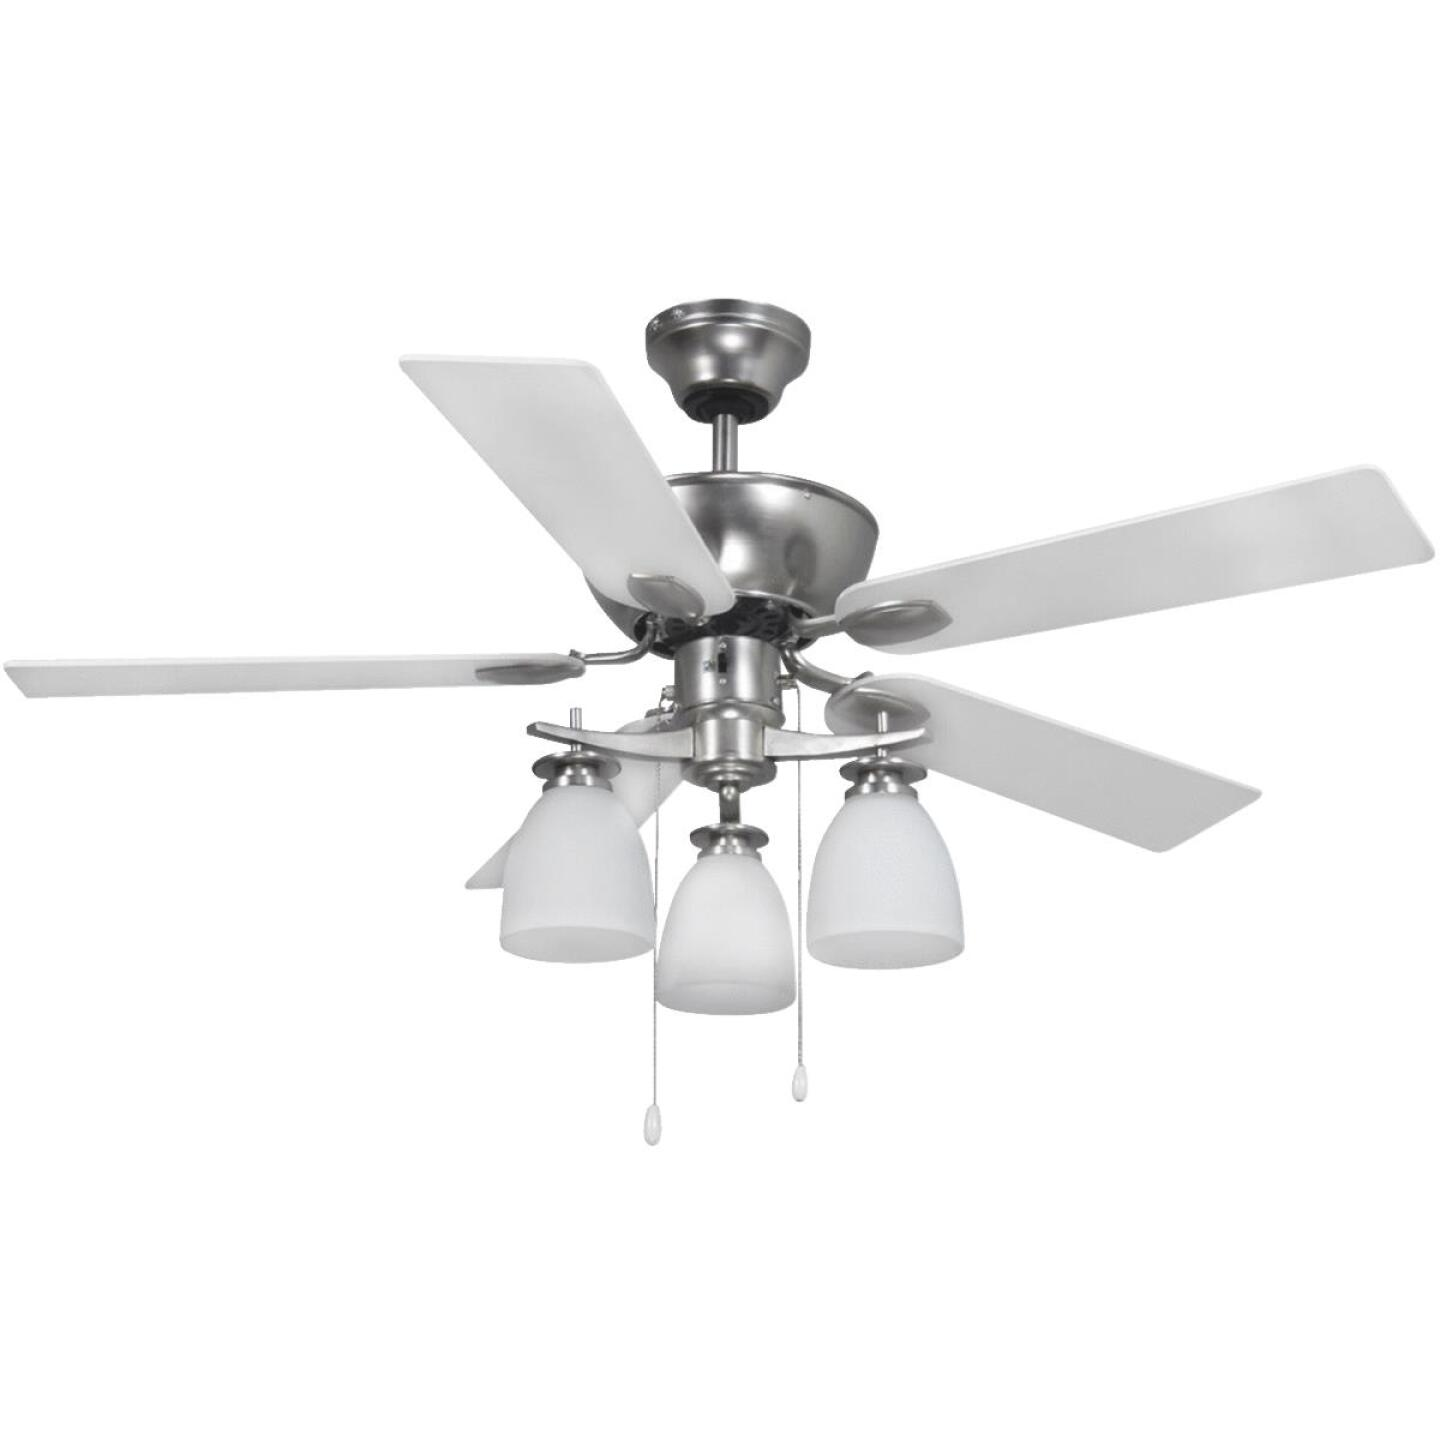 Home Impressions New Yorker 42 In. Brushed Nickel Ceiling Fan with Light Kit Image 4